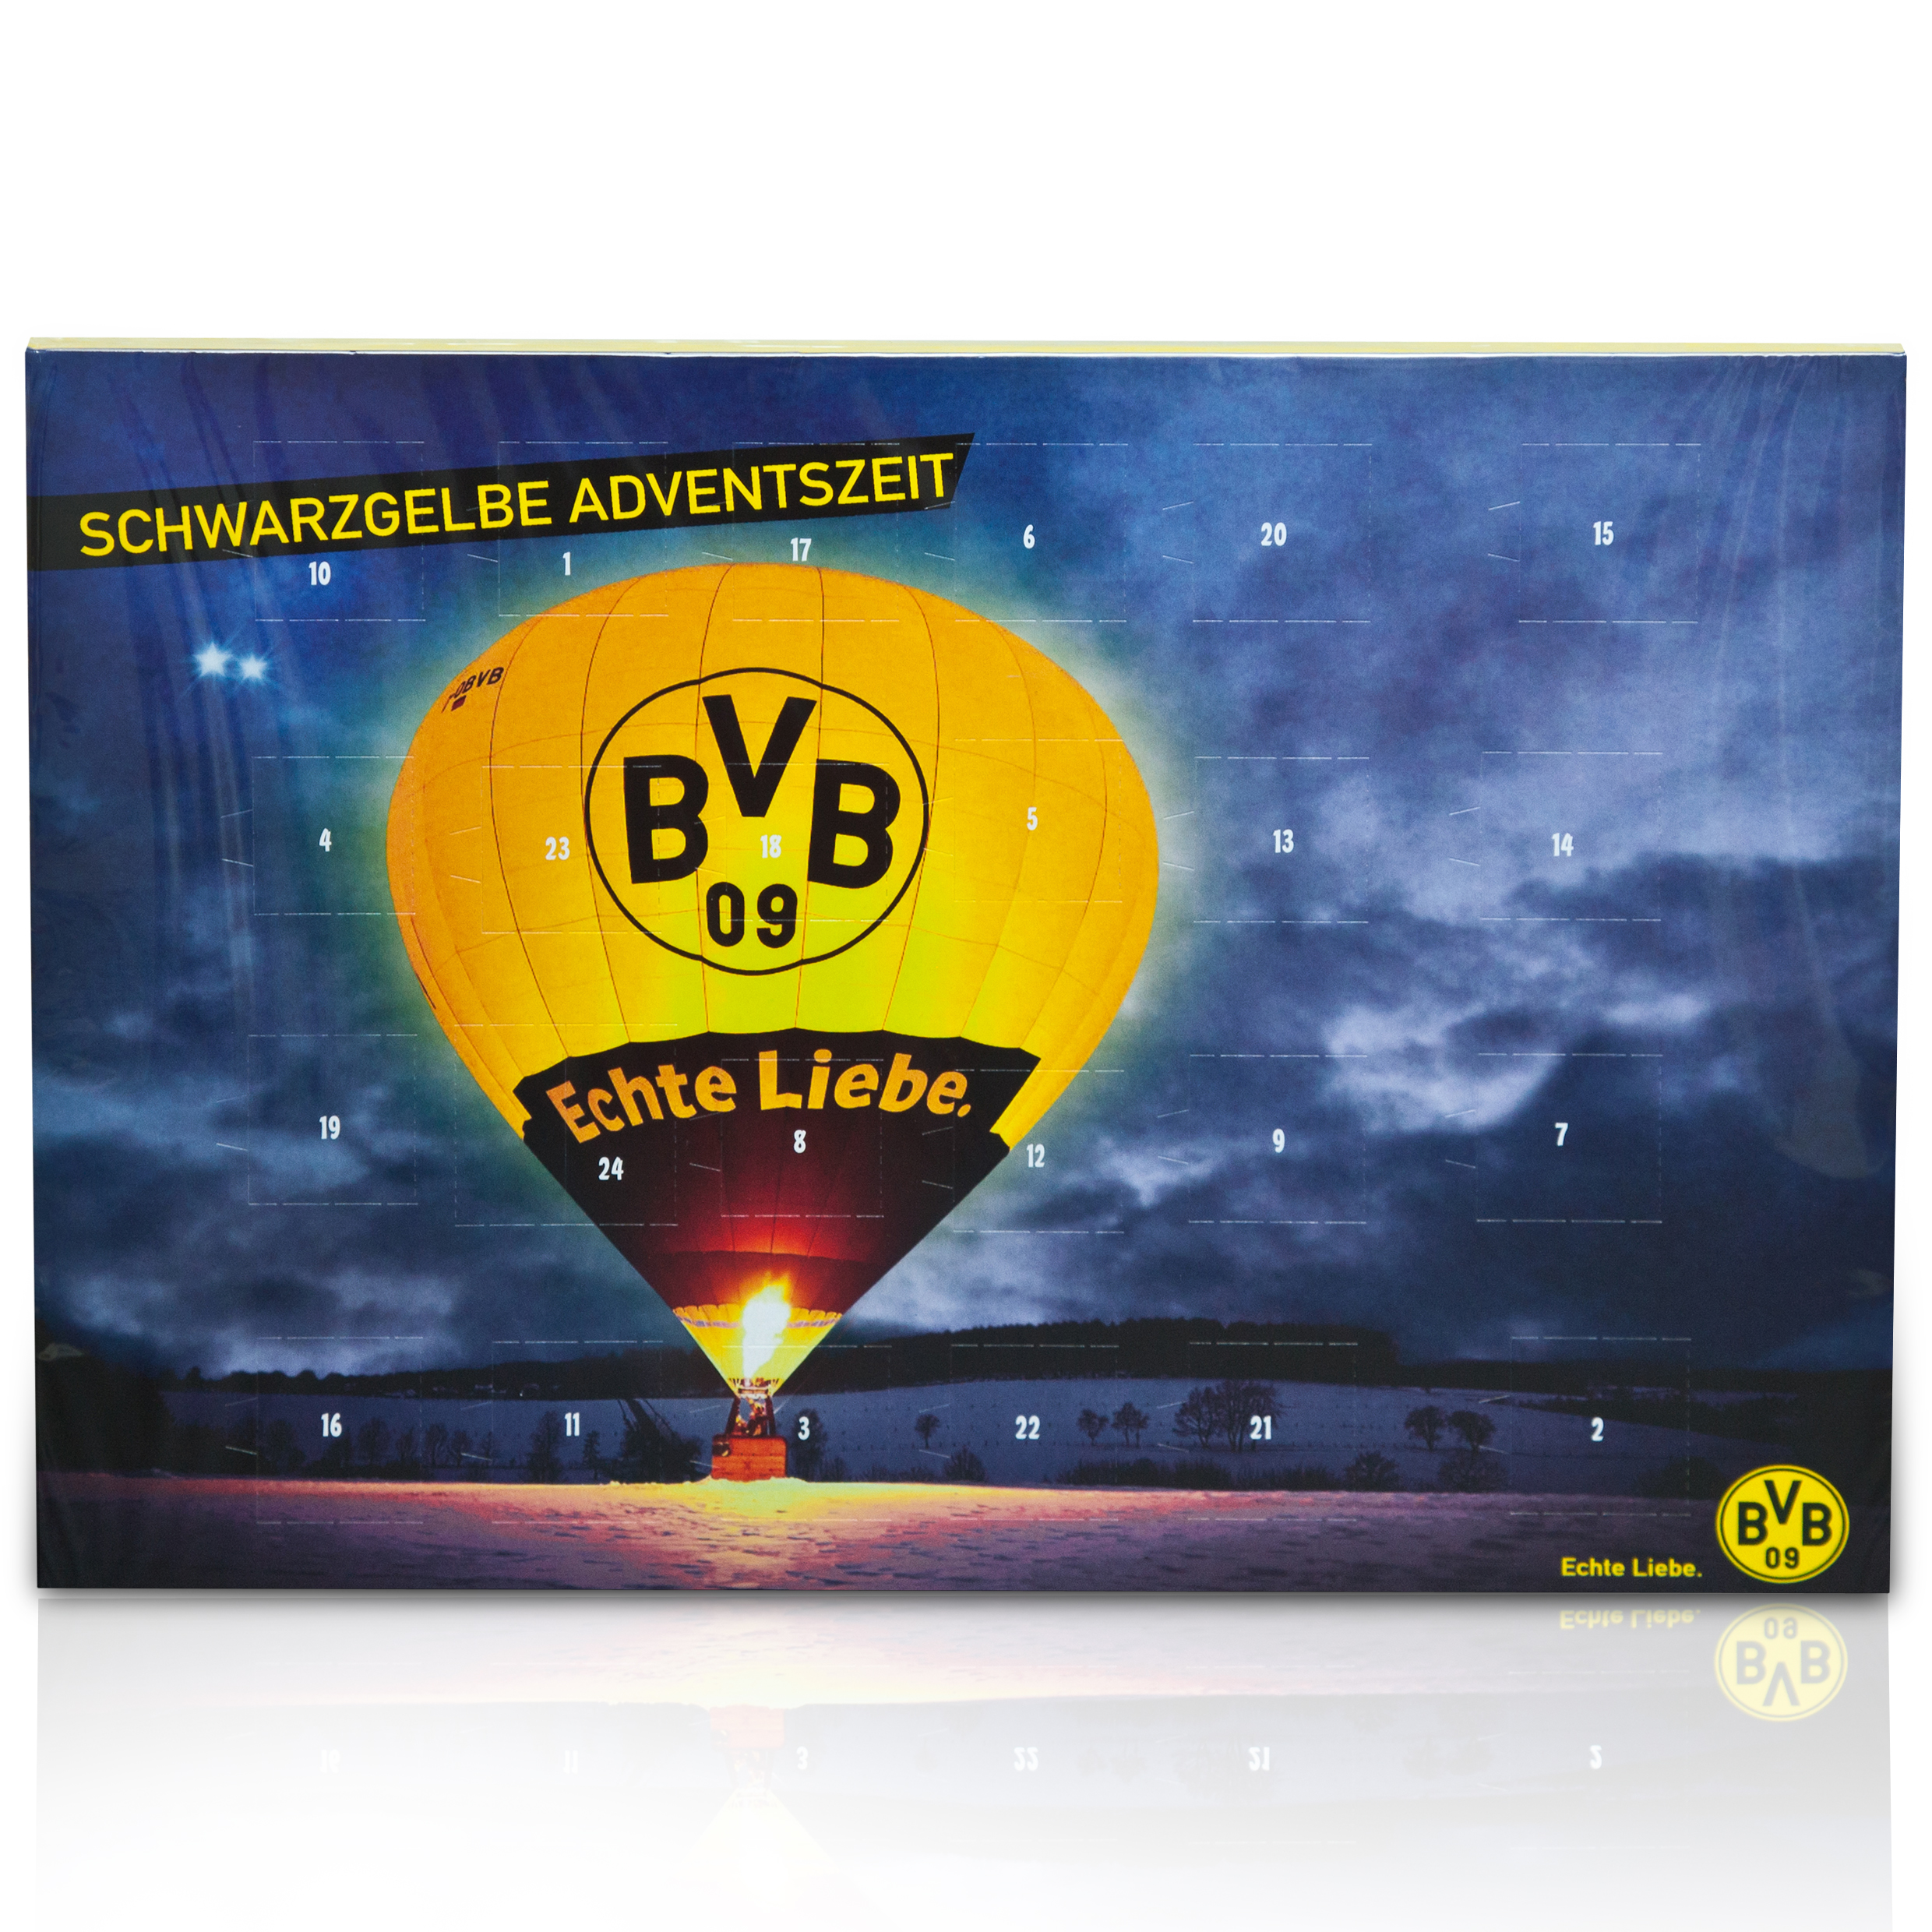 BVB Advent Calendar